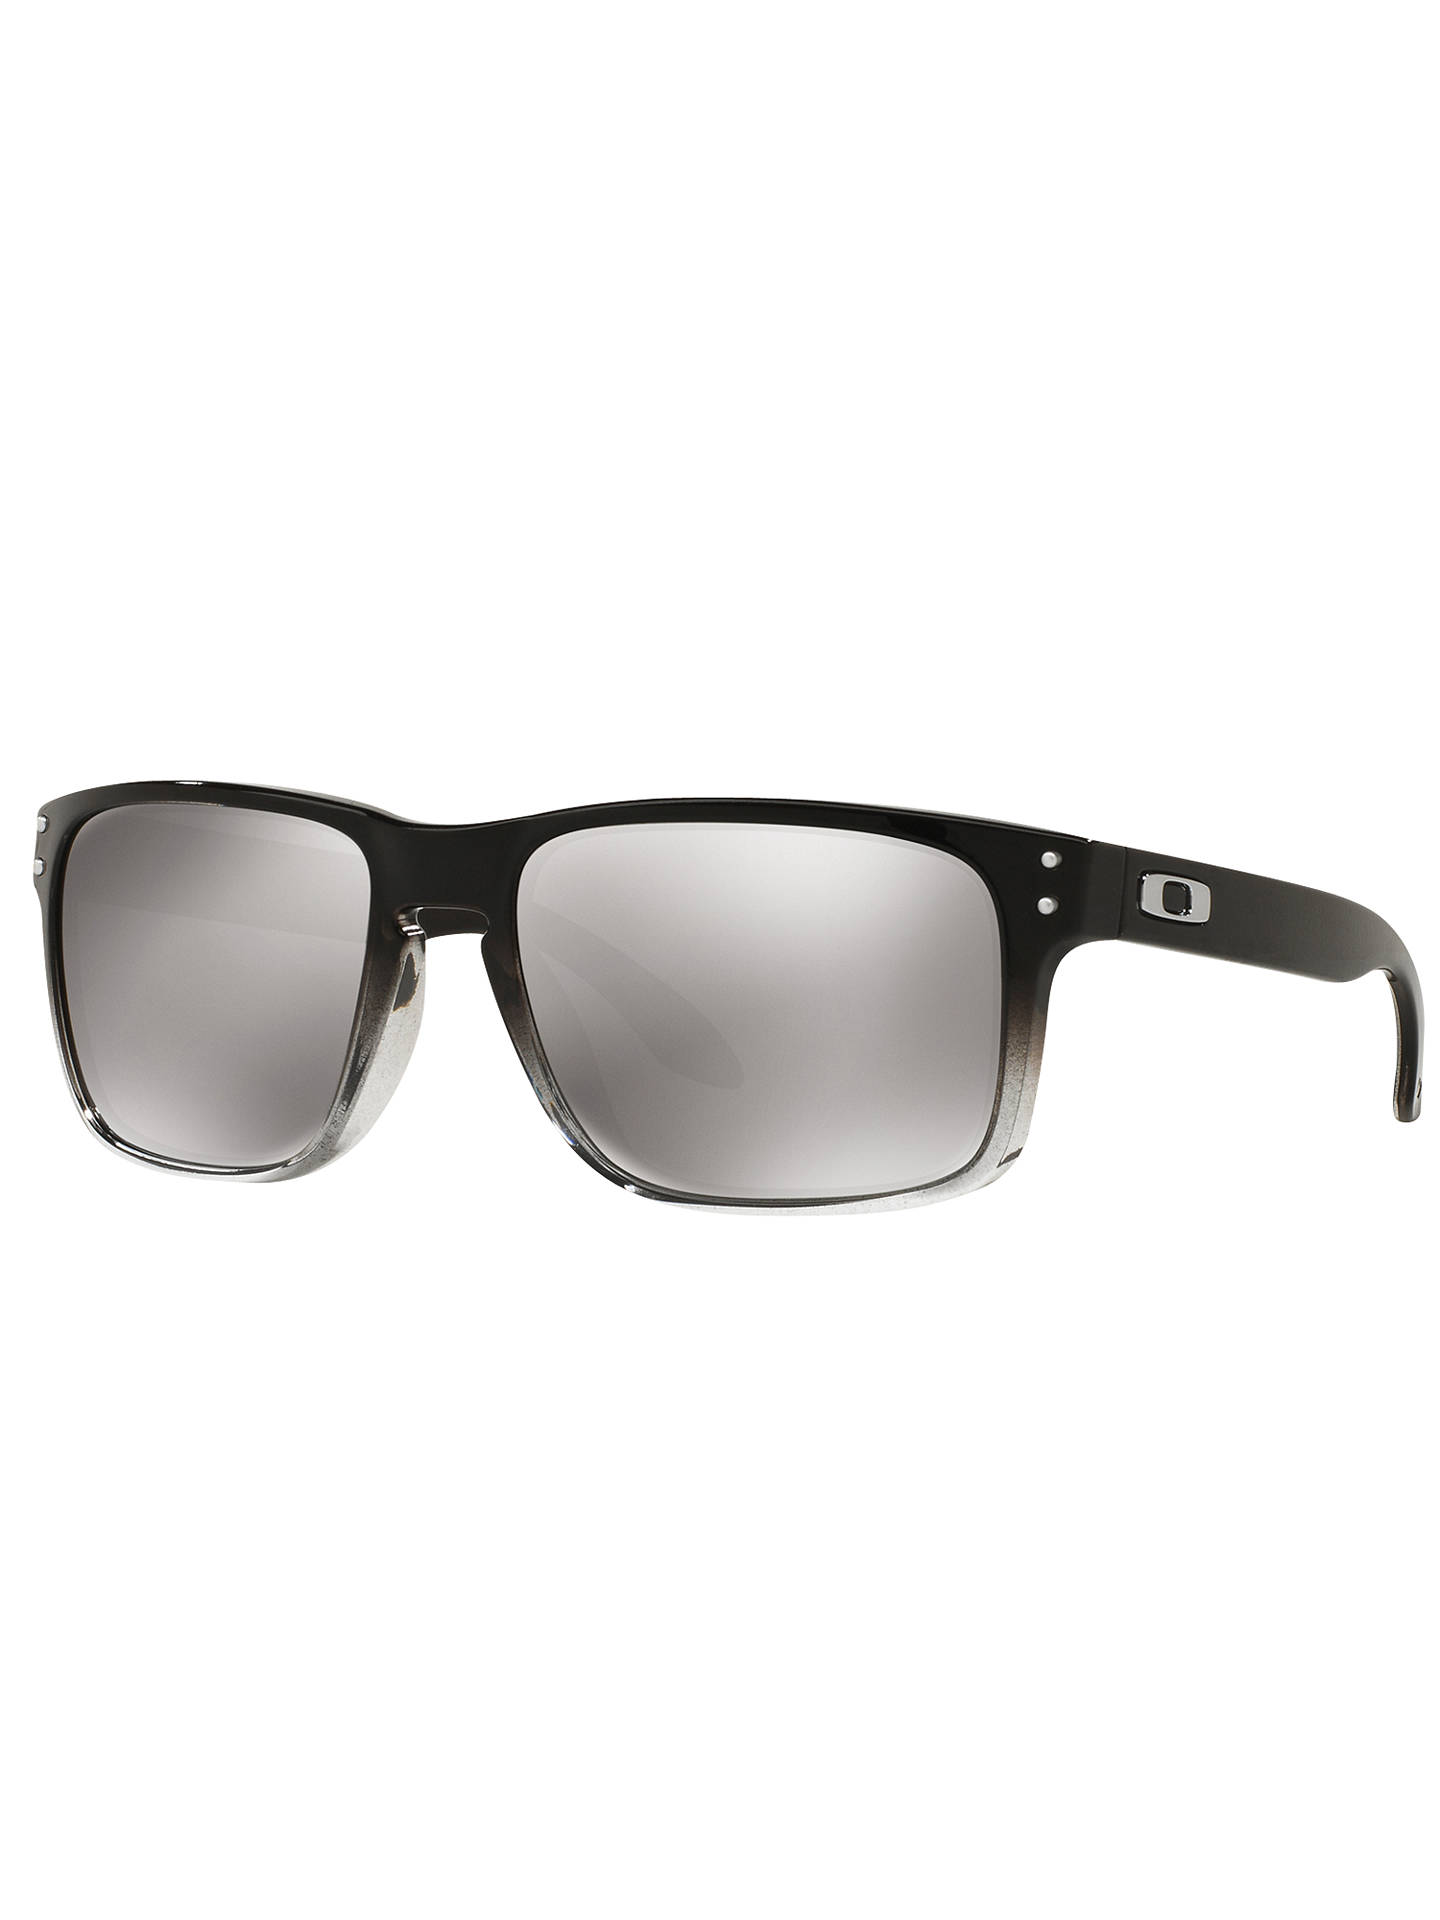 BuyOakley OO9102 Holbrook Polarised Square Sunglasses, Silver Online at johnlewis.com